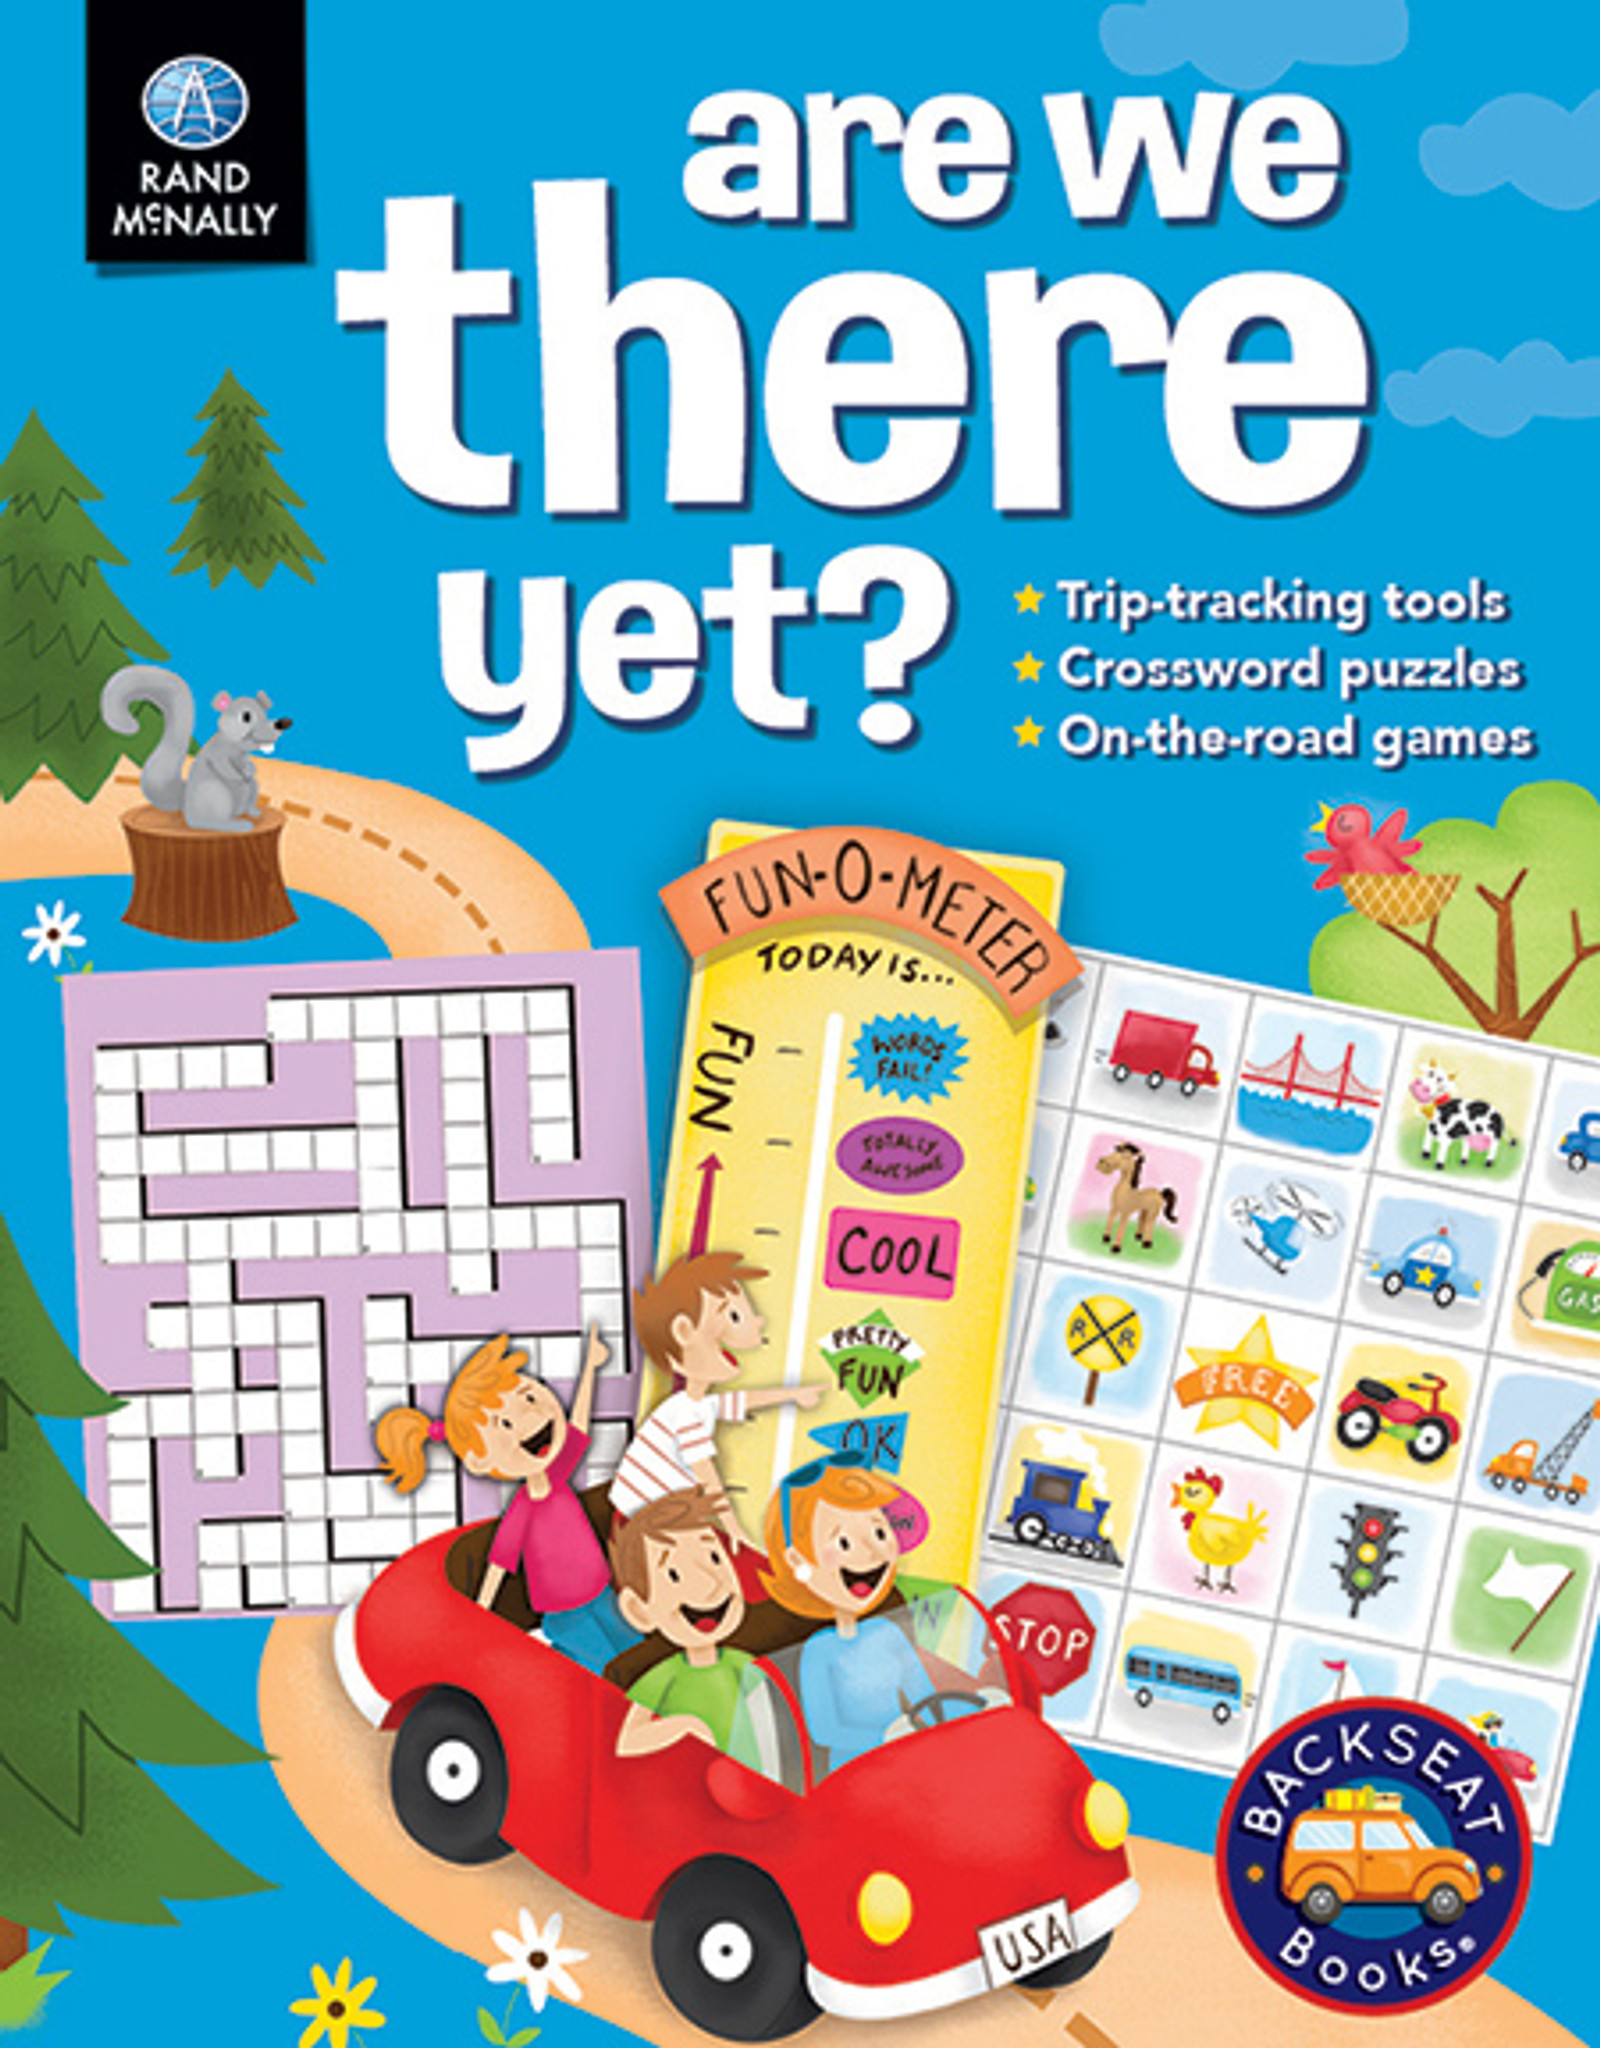 Are We There Yet? DVD (2005) - Mill Creek Entertainment